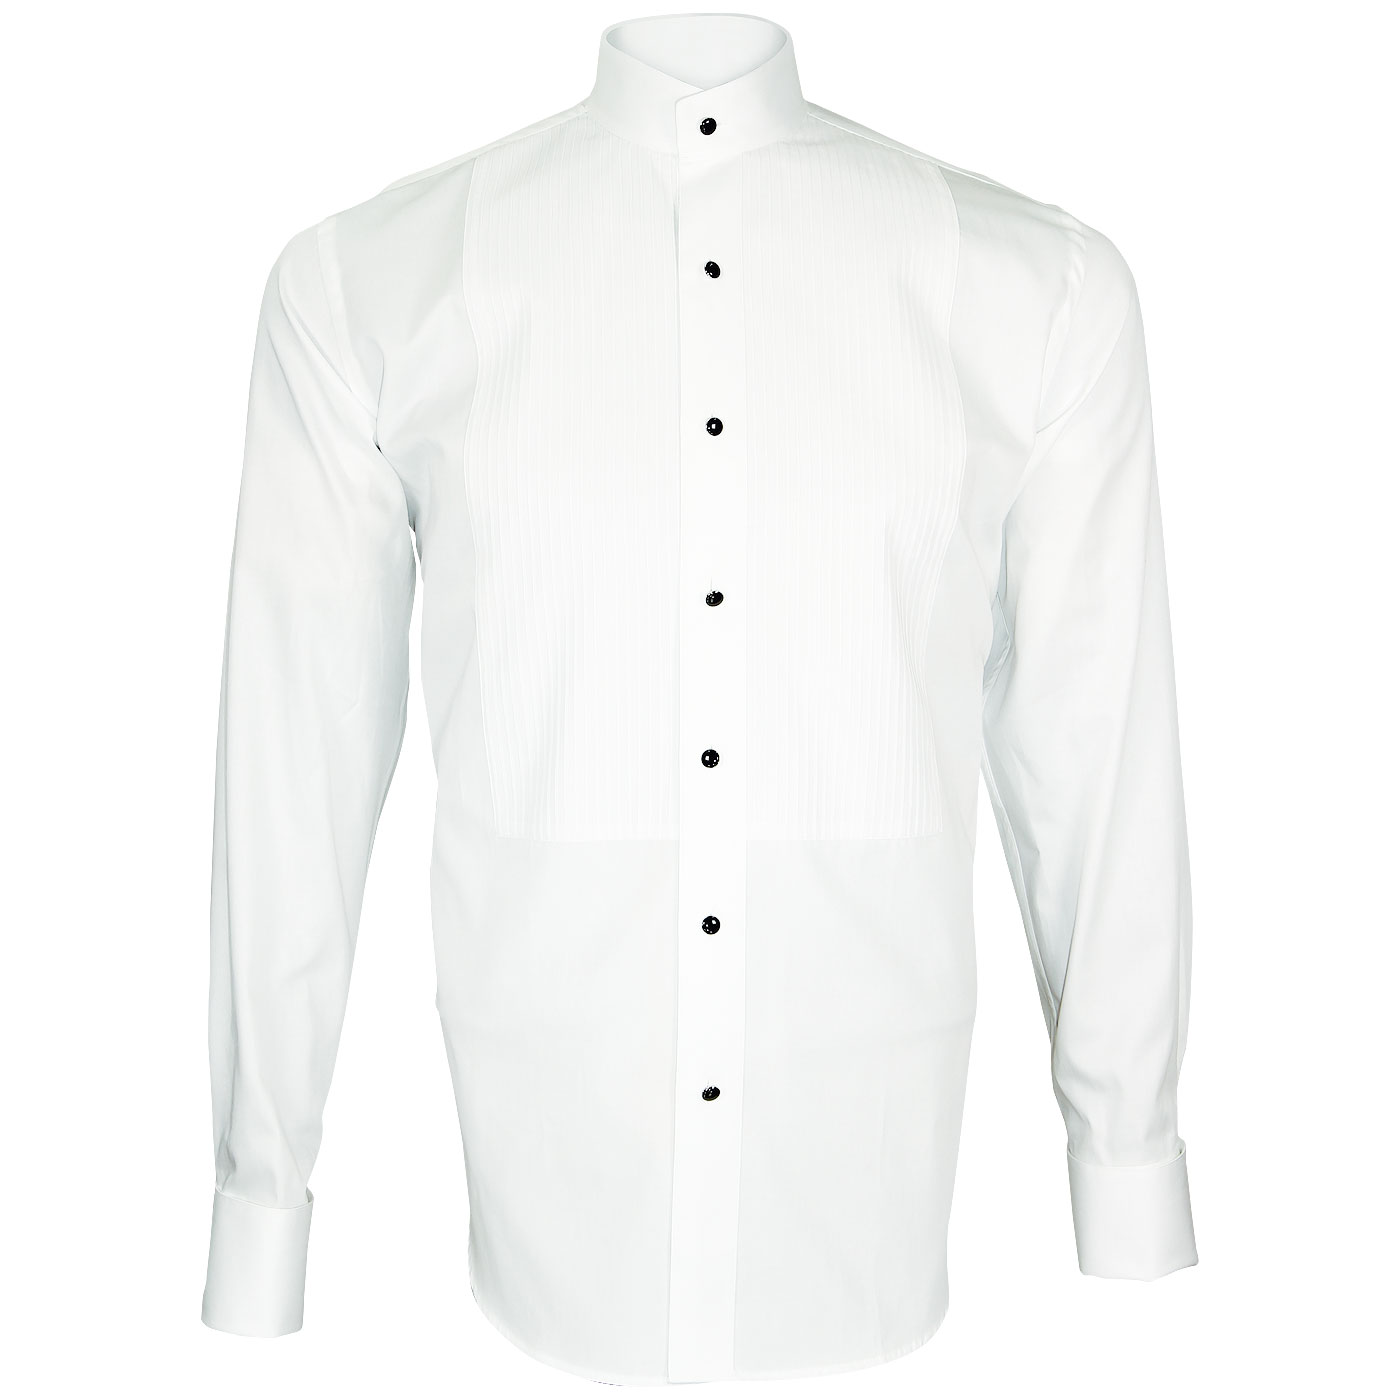 Ceremony Dress Shirt